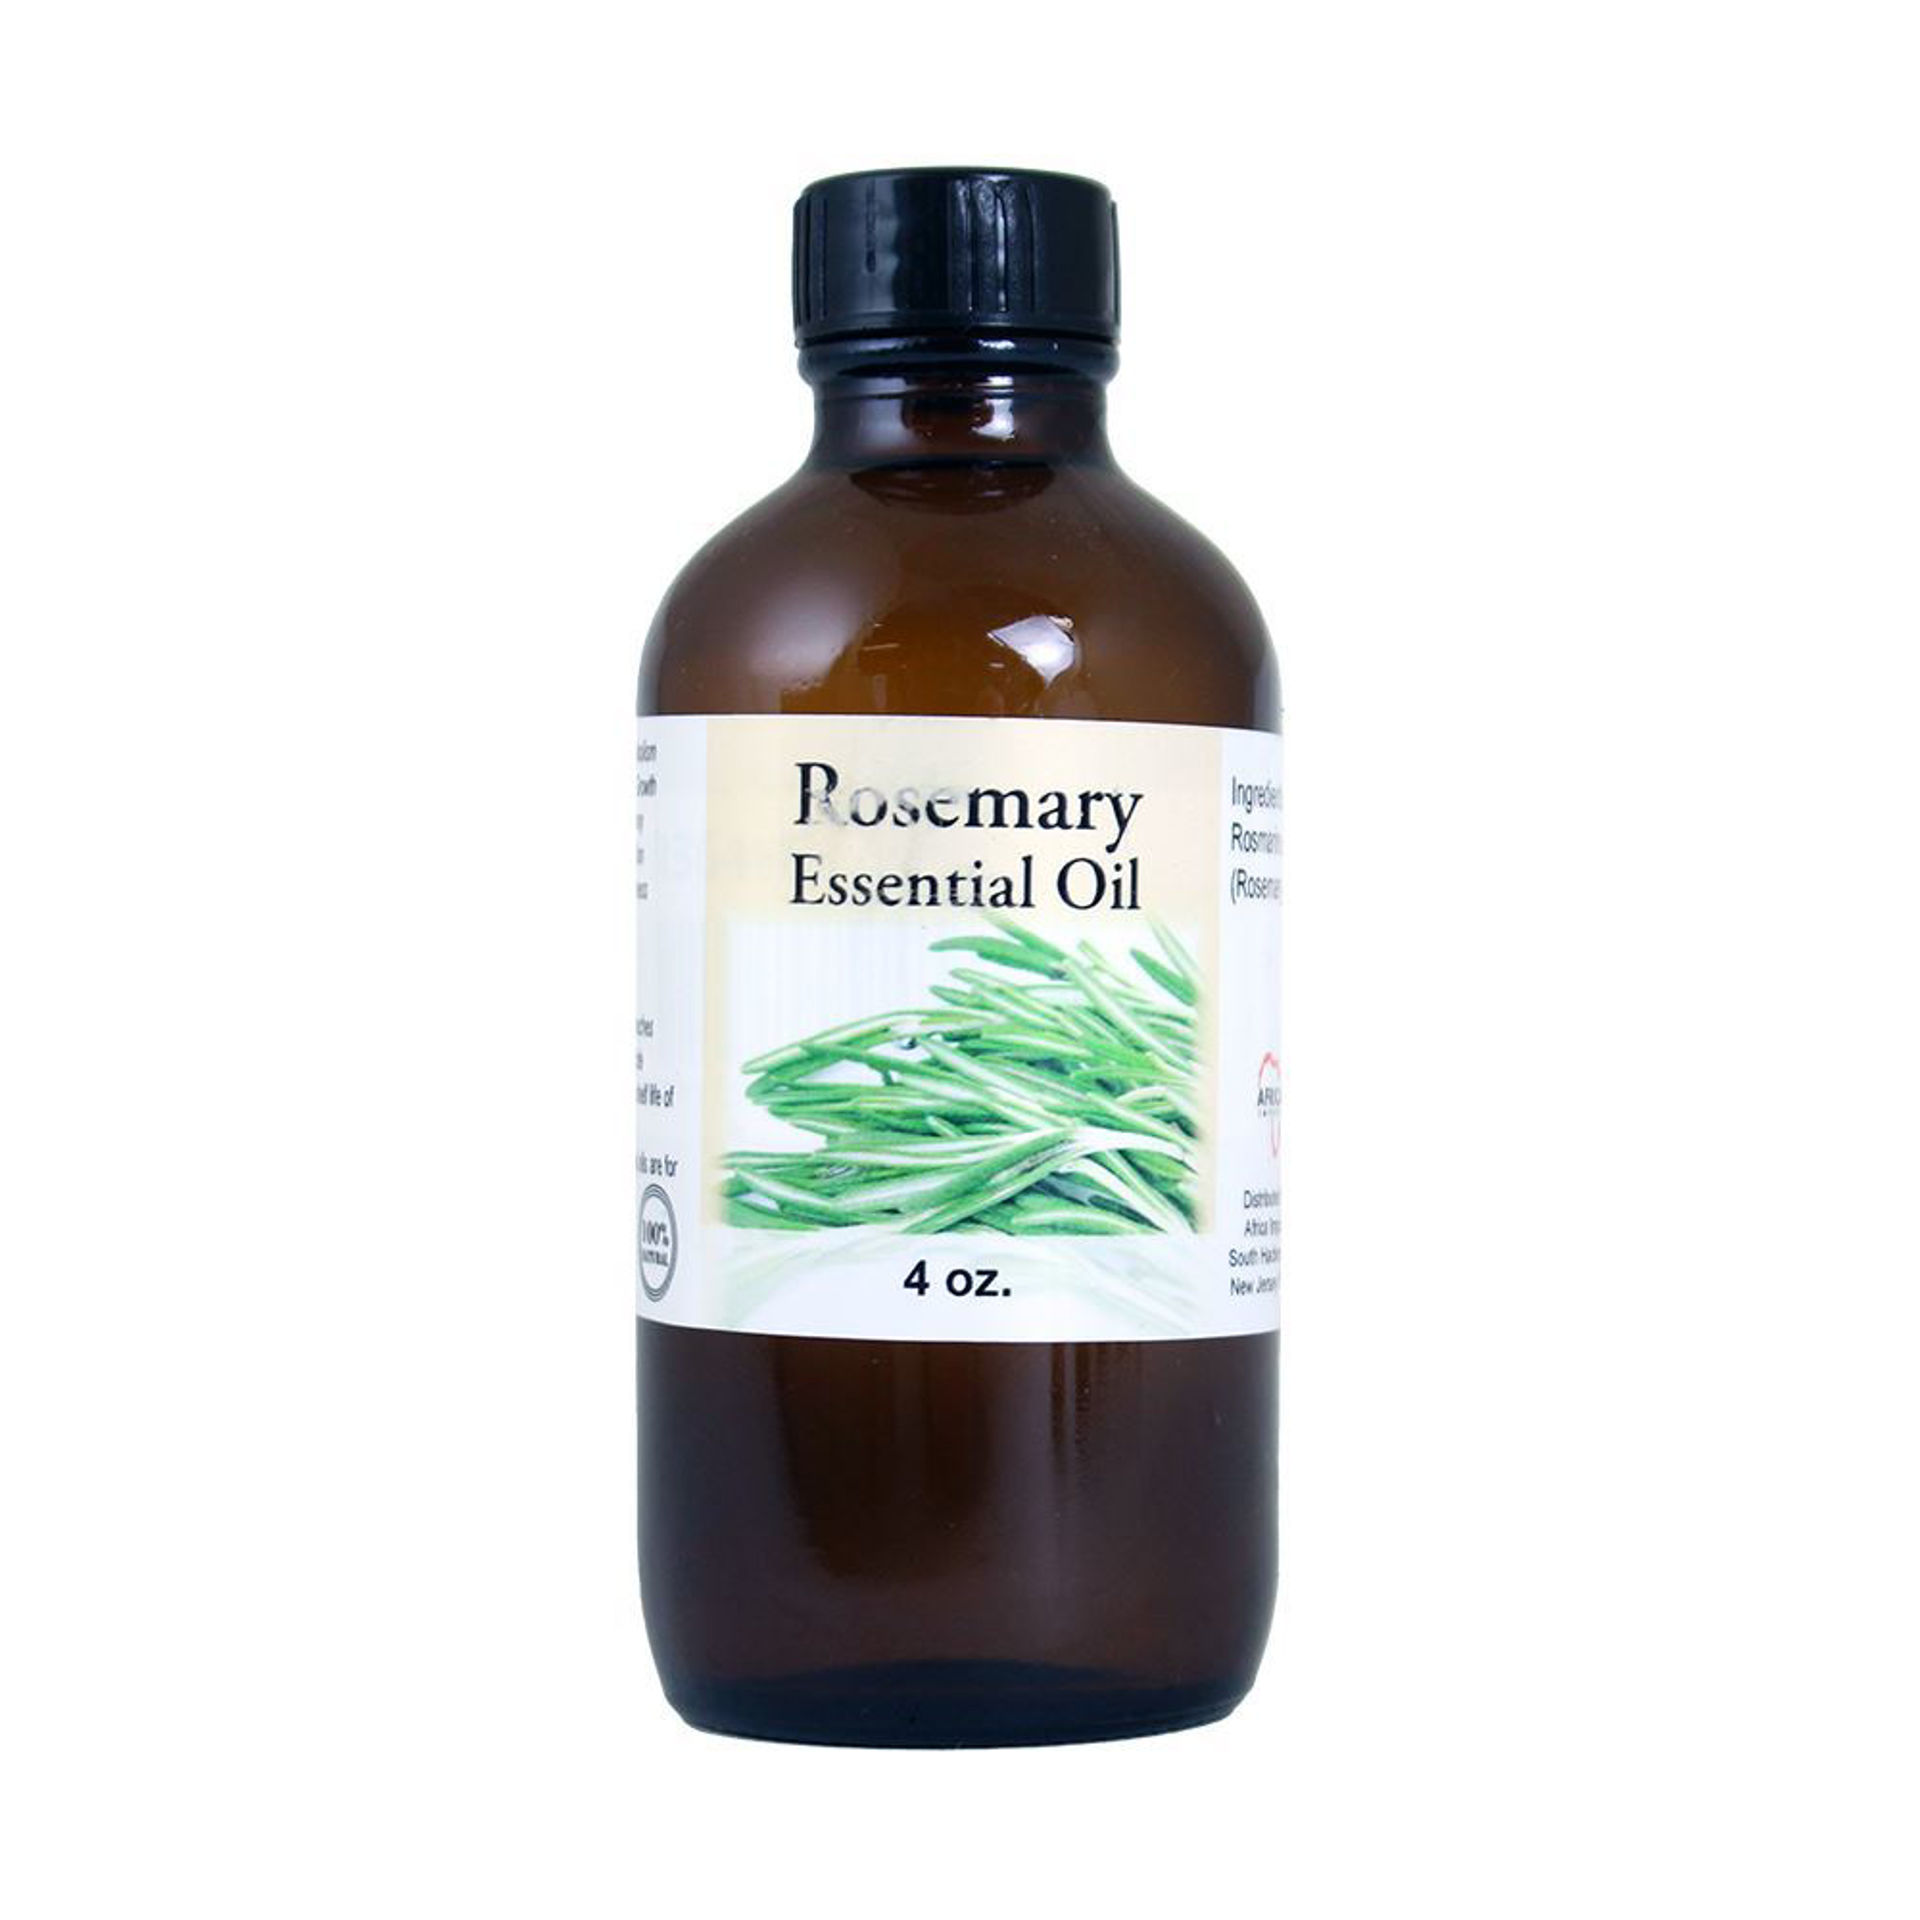 Picture of Rosemary Essential Oil: 4 oz.